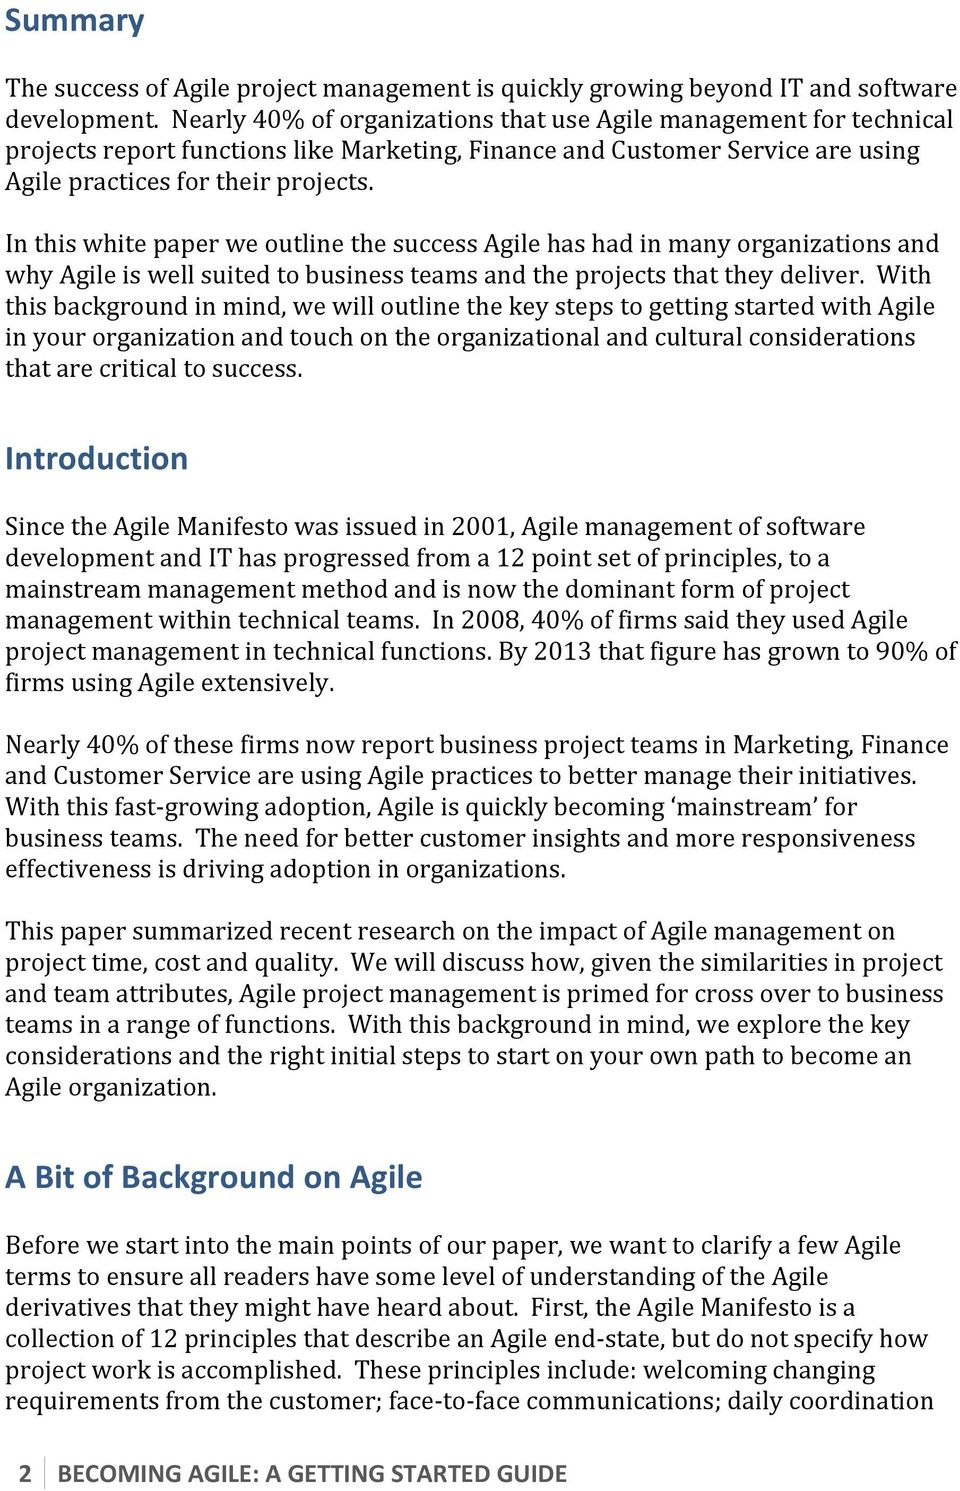 In this white paper we outline the success Agile has had in many organizations and why Agile is well suited to business teams and the projects that they deliver.